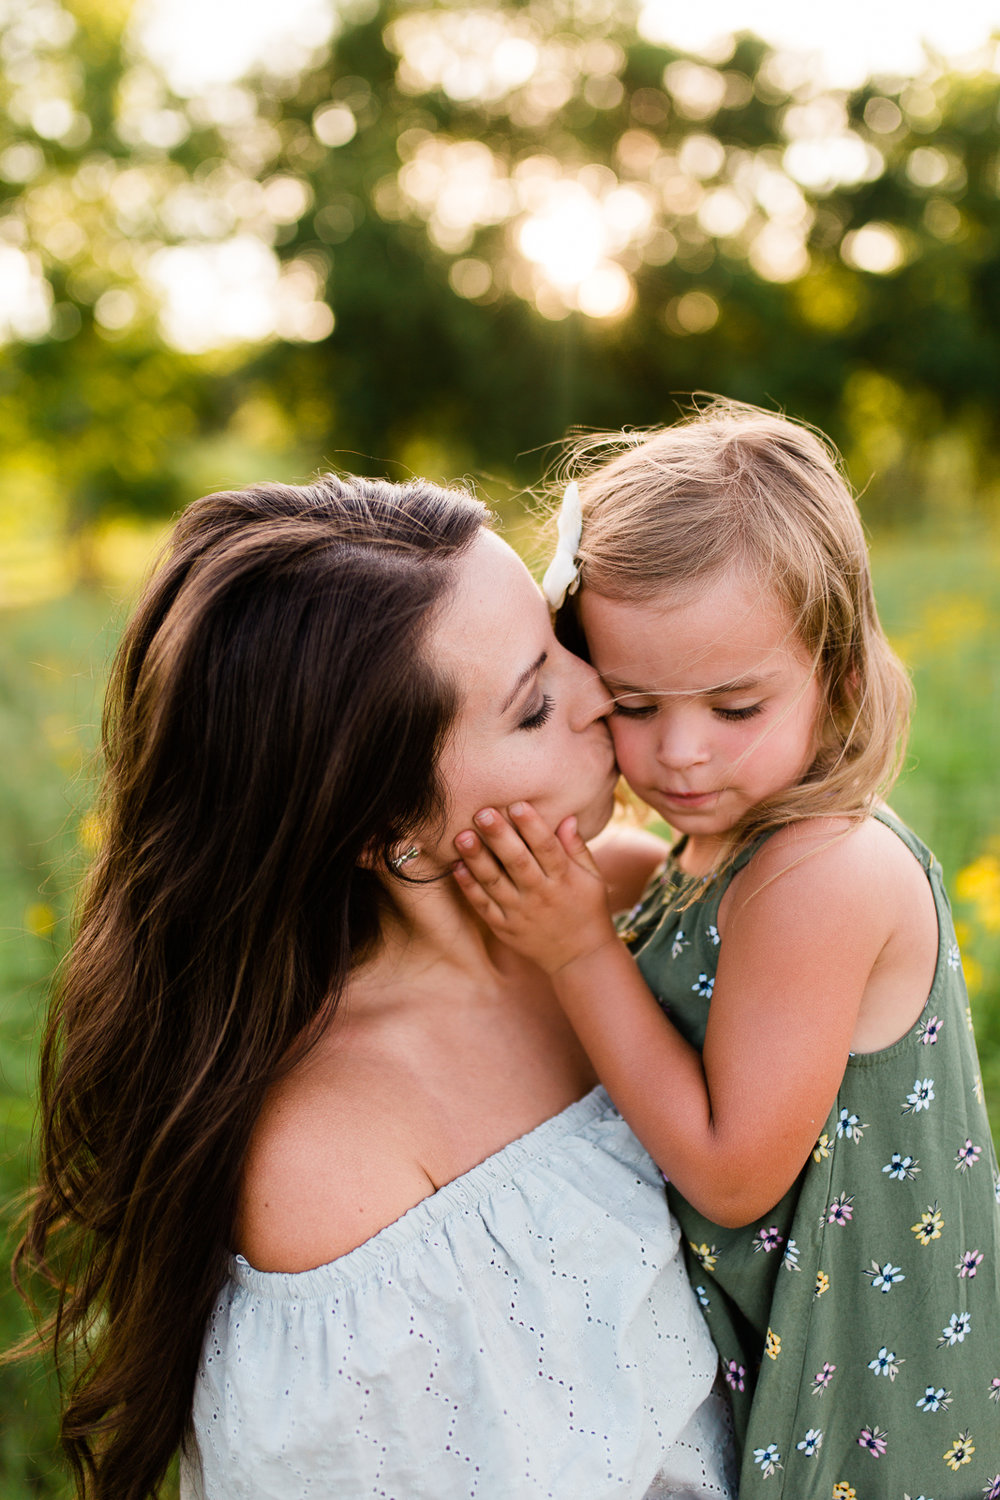 Mother kisses daughter's cheek, golden hour mommy and me session at Shawnee Mission Park, Kansas City family photographer